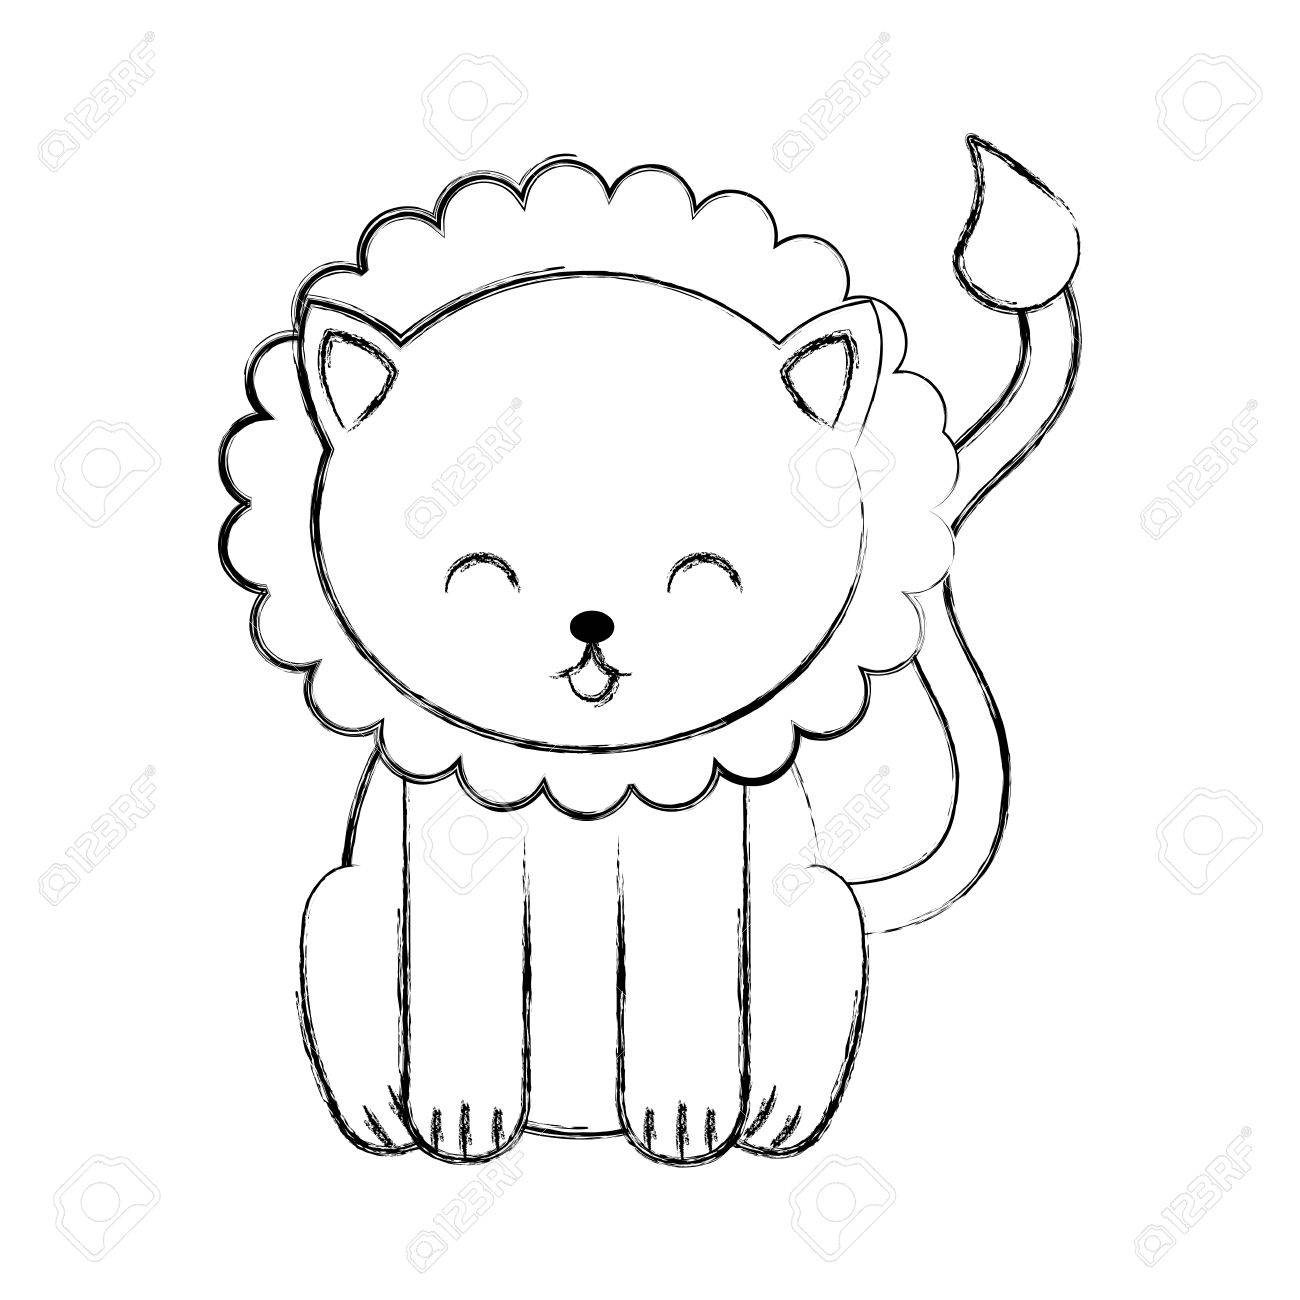 Cute Sketch Draw Lion Cartoon Graphic Design Royalty Free Cliparts